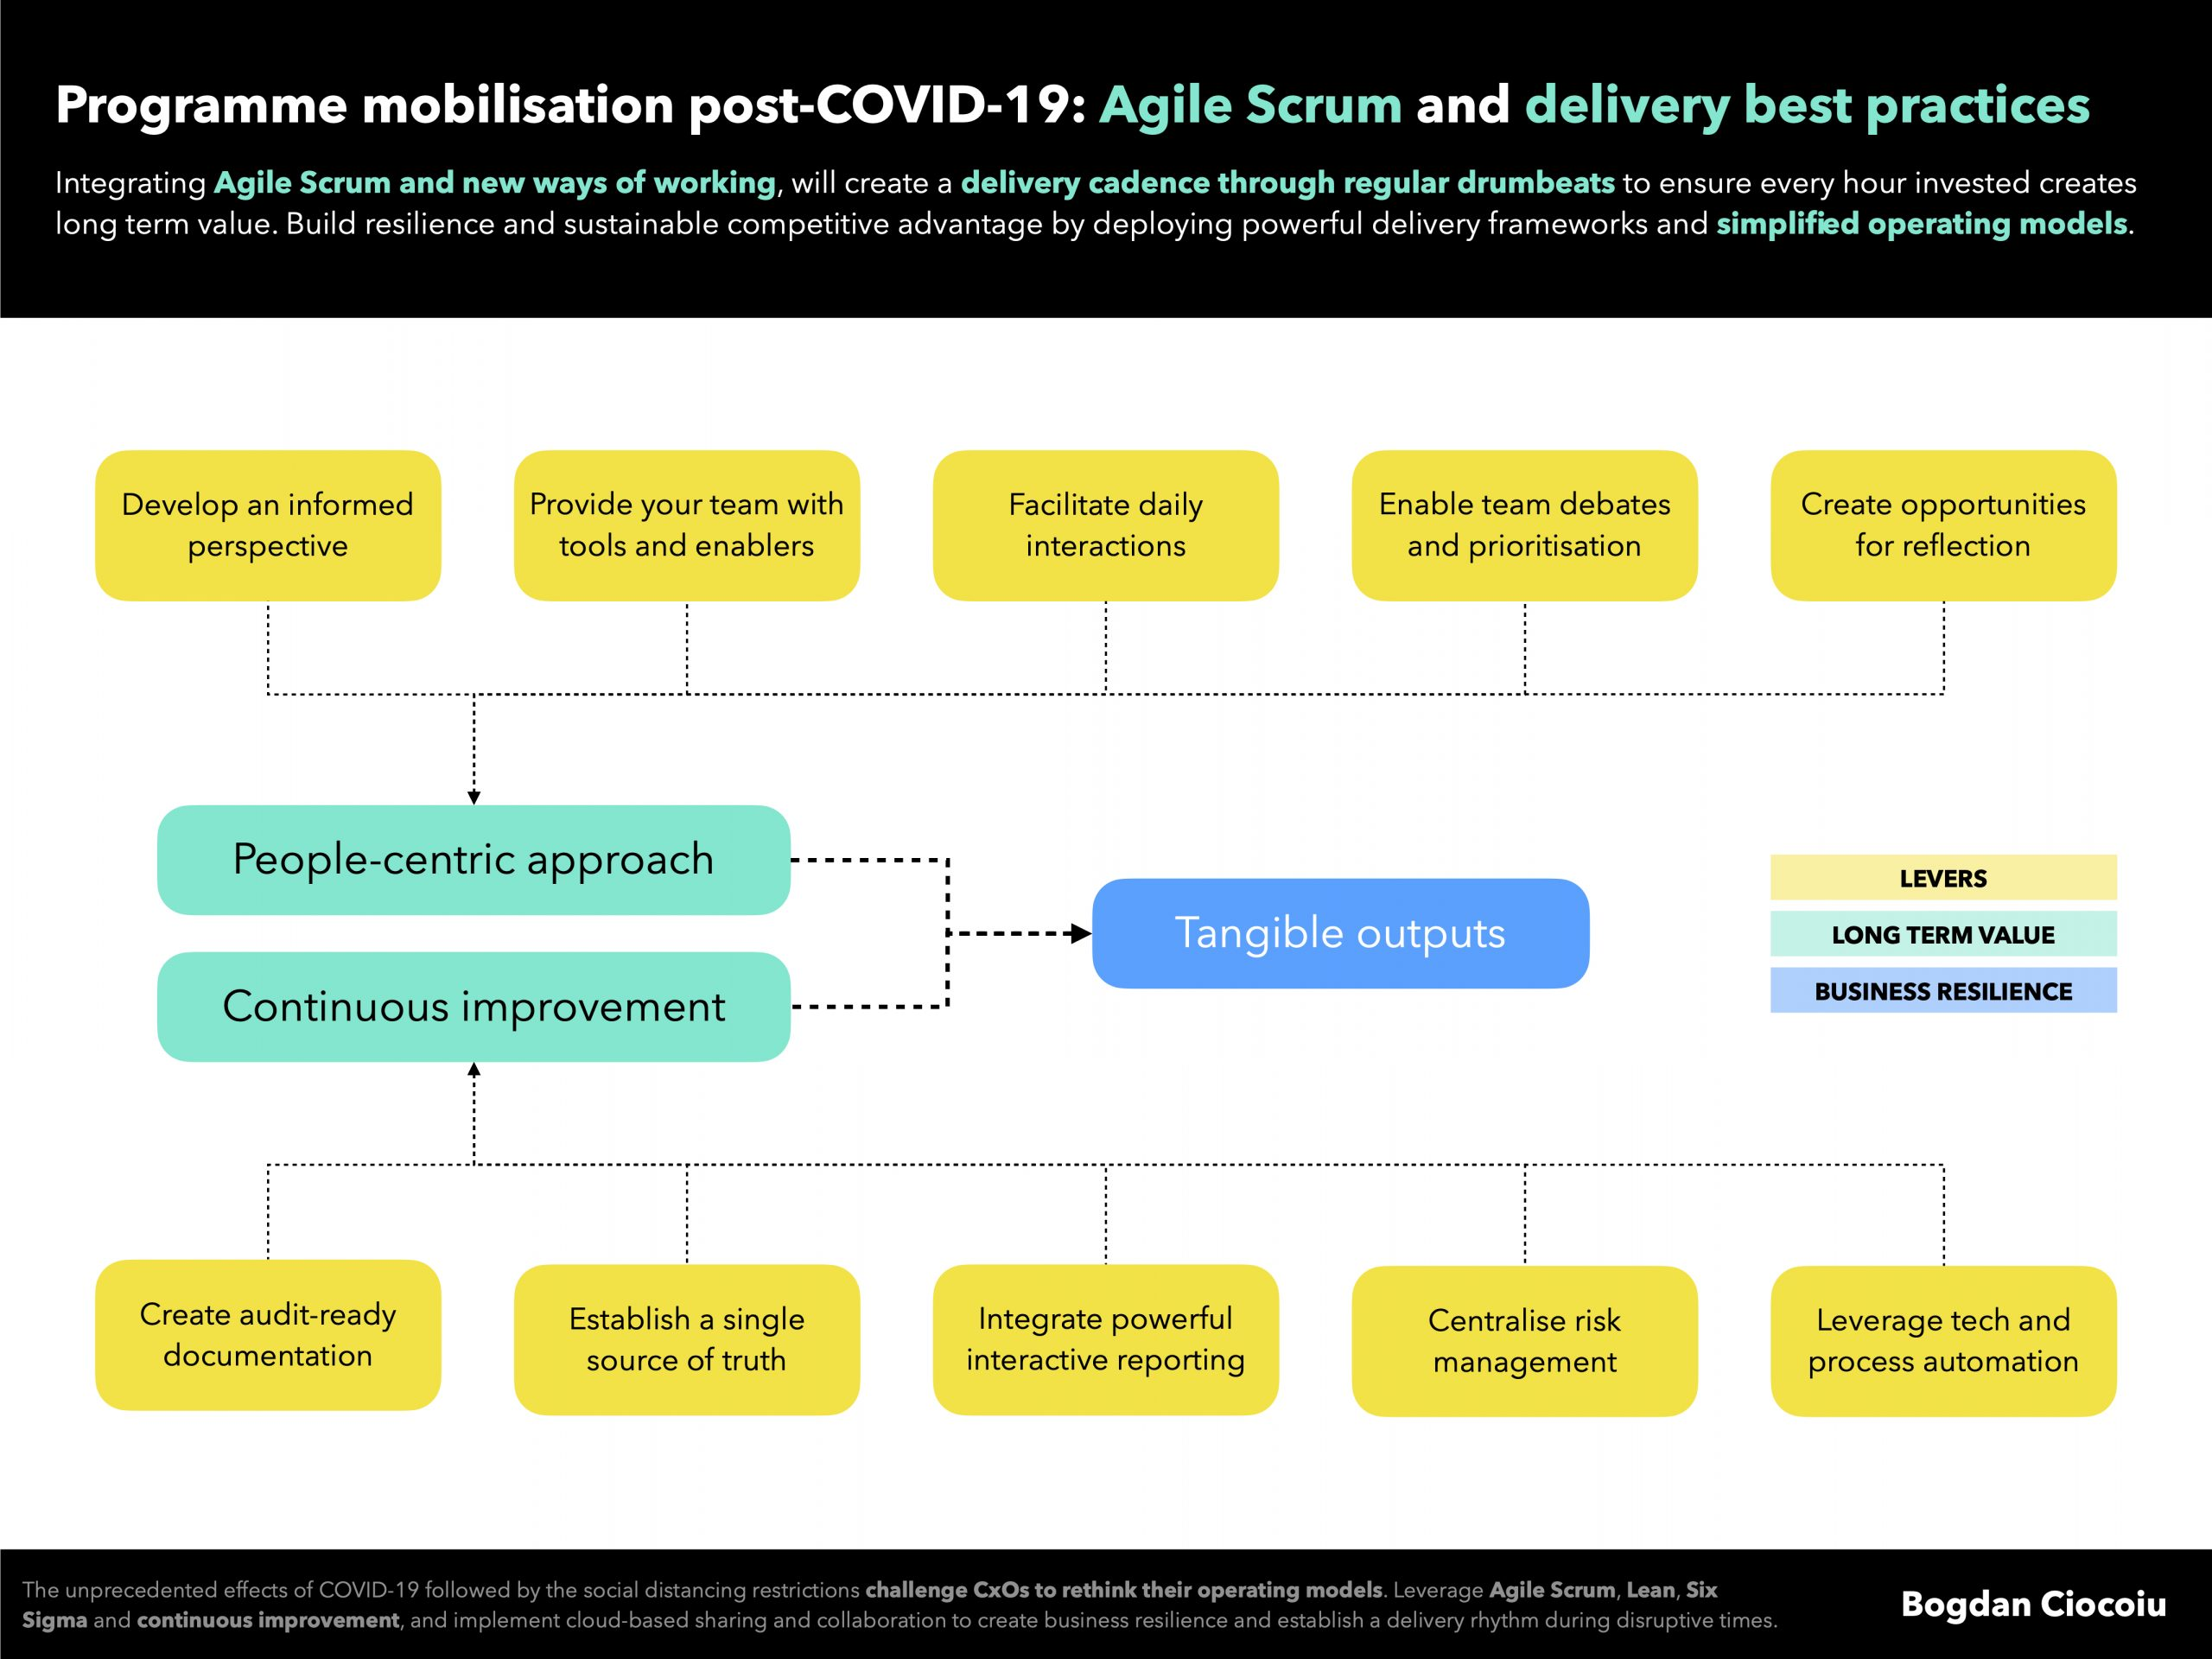 Programme mobilisation post-COVID-19 - Agile Scrum and delivery best practices